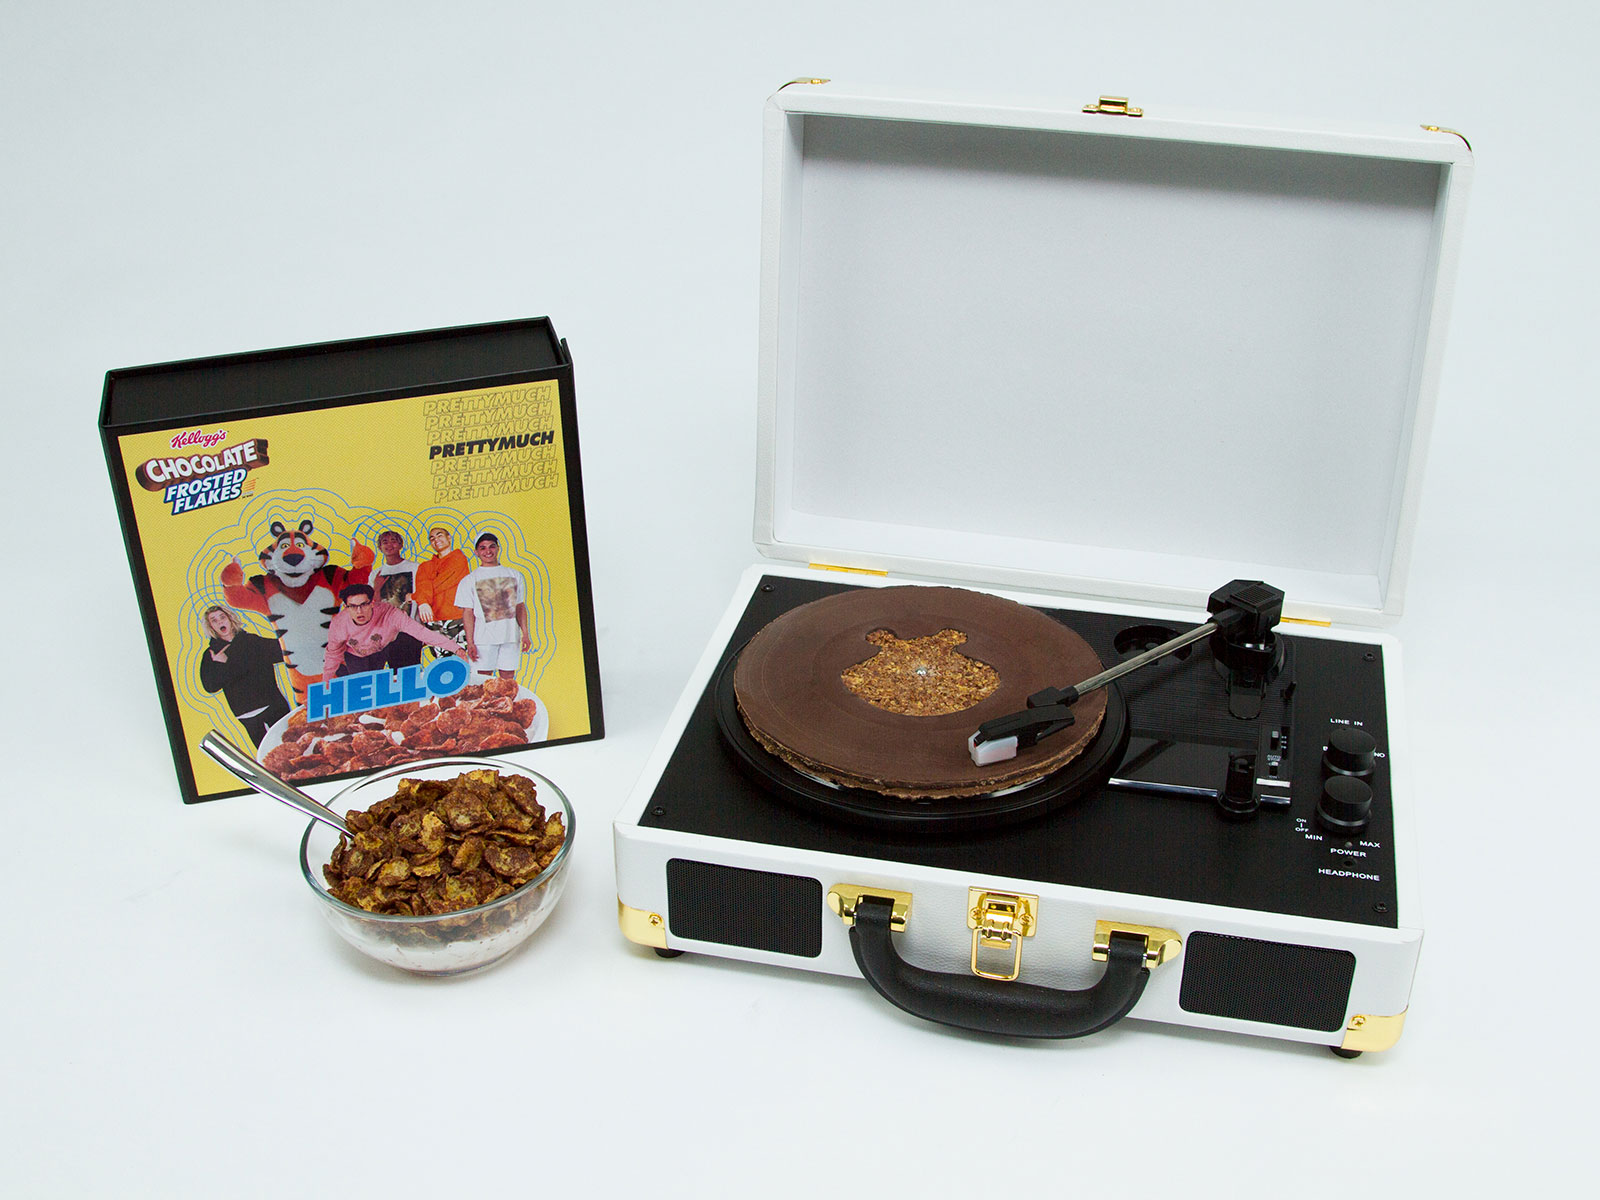 This Chocolate Frosted Flakes Record Actually Plays Music